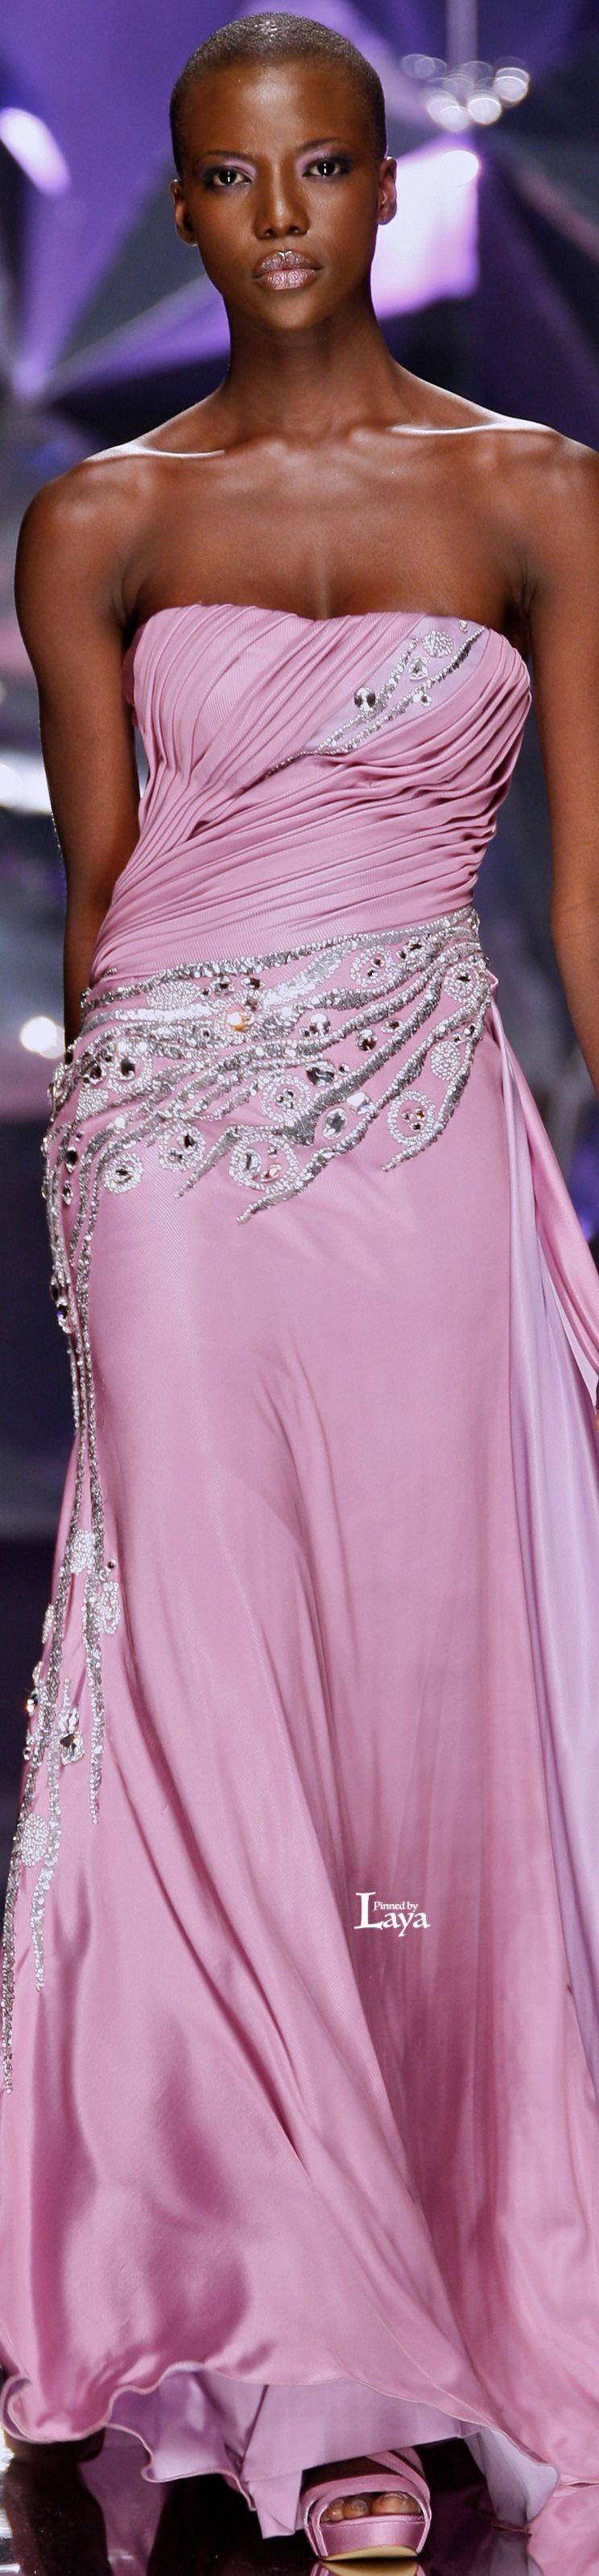 ♔LAYA♔ABED MAHFOUZ S/S 2009 COUTURE♔ | Alta Costura | Pinterest ...